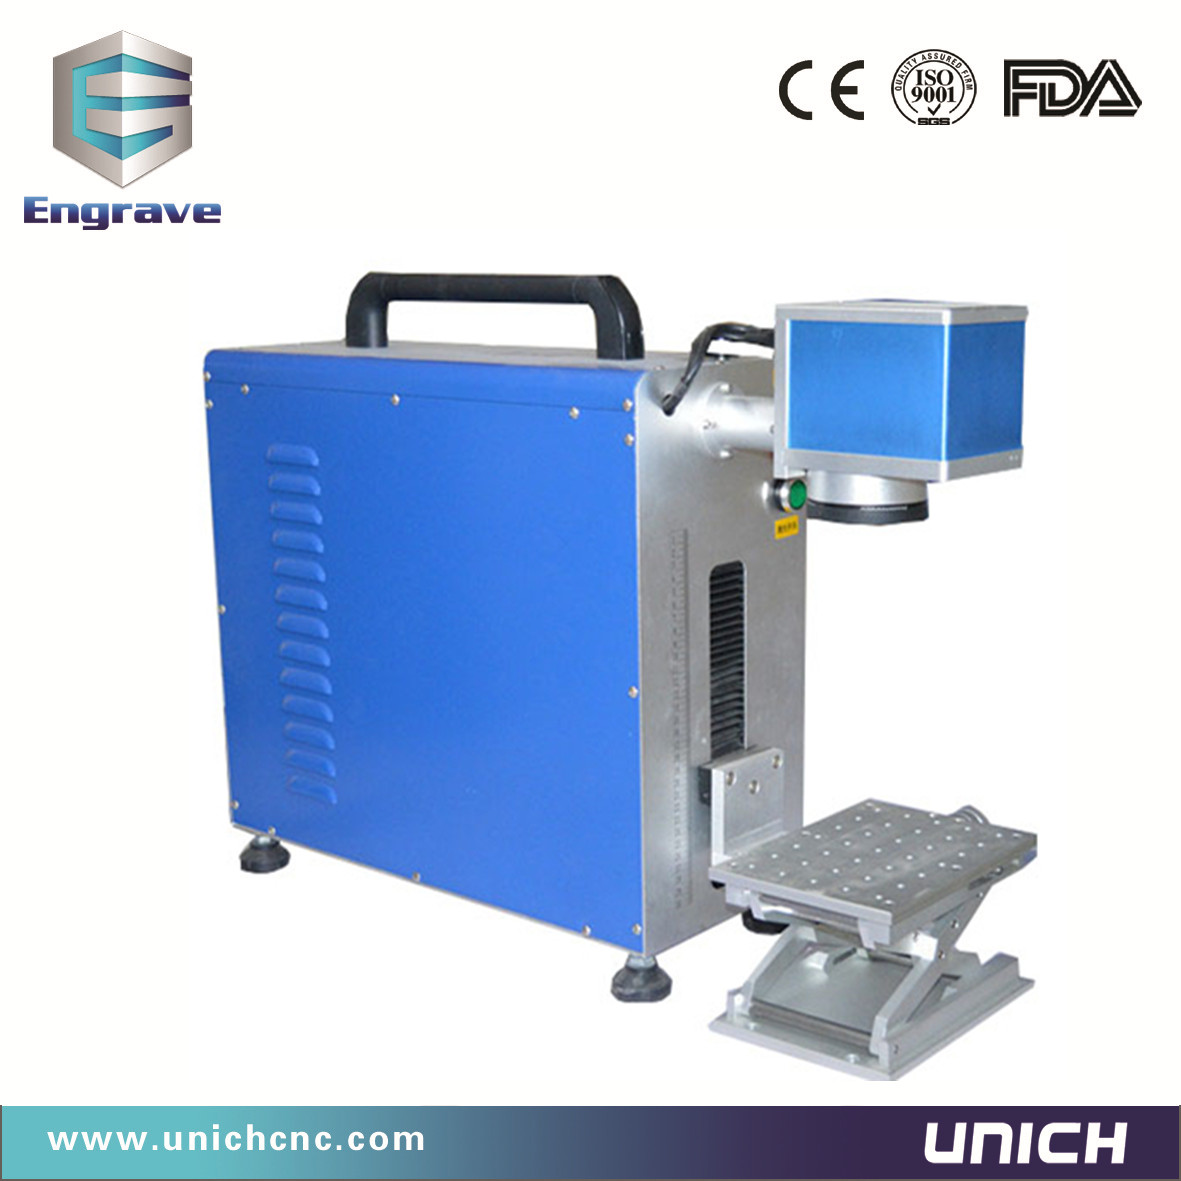 UNICH The second kind portable fiber marking machine